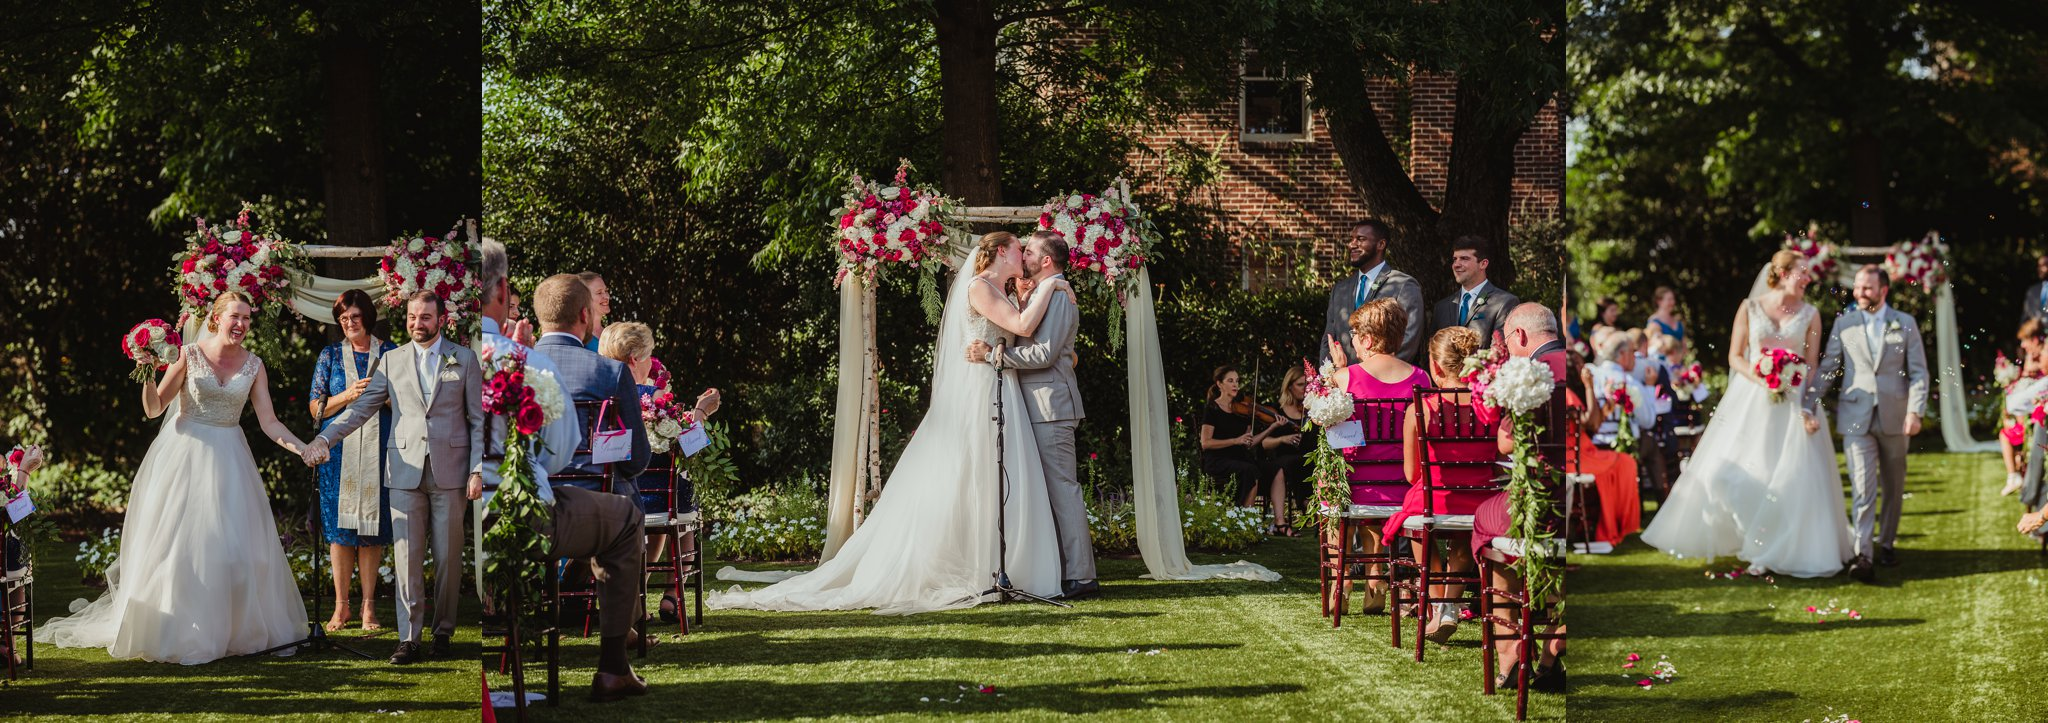 The bride and groom exchange a first kiss during their wedding ceremony at the Merrimon Wynne in Raleigh, photos by Rose Trail Images.